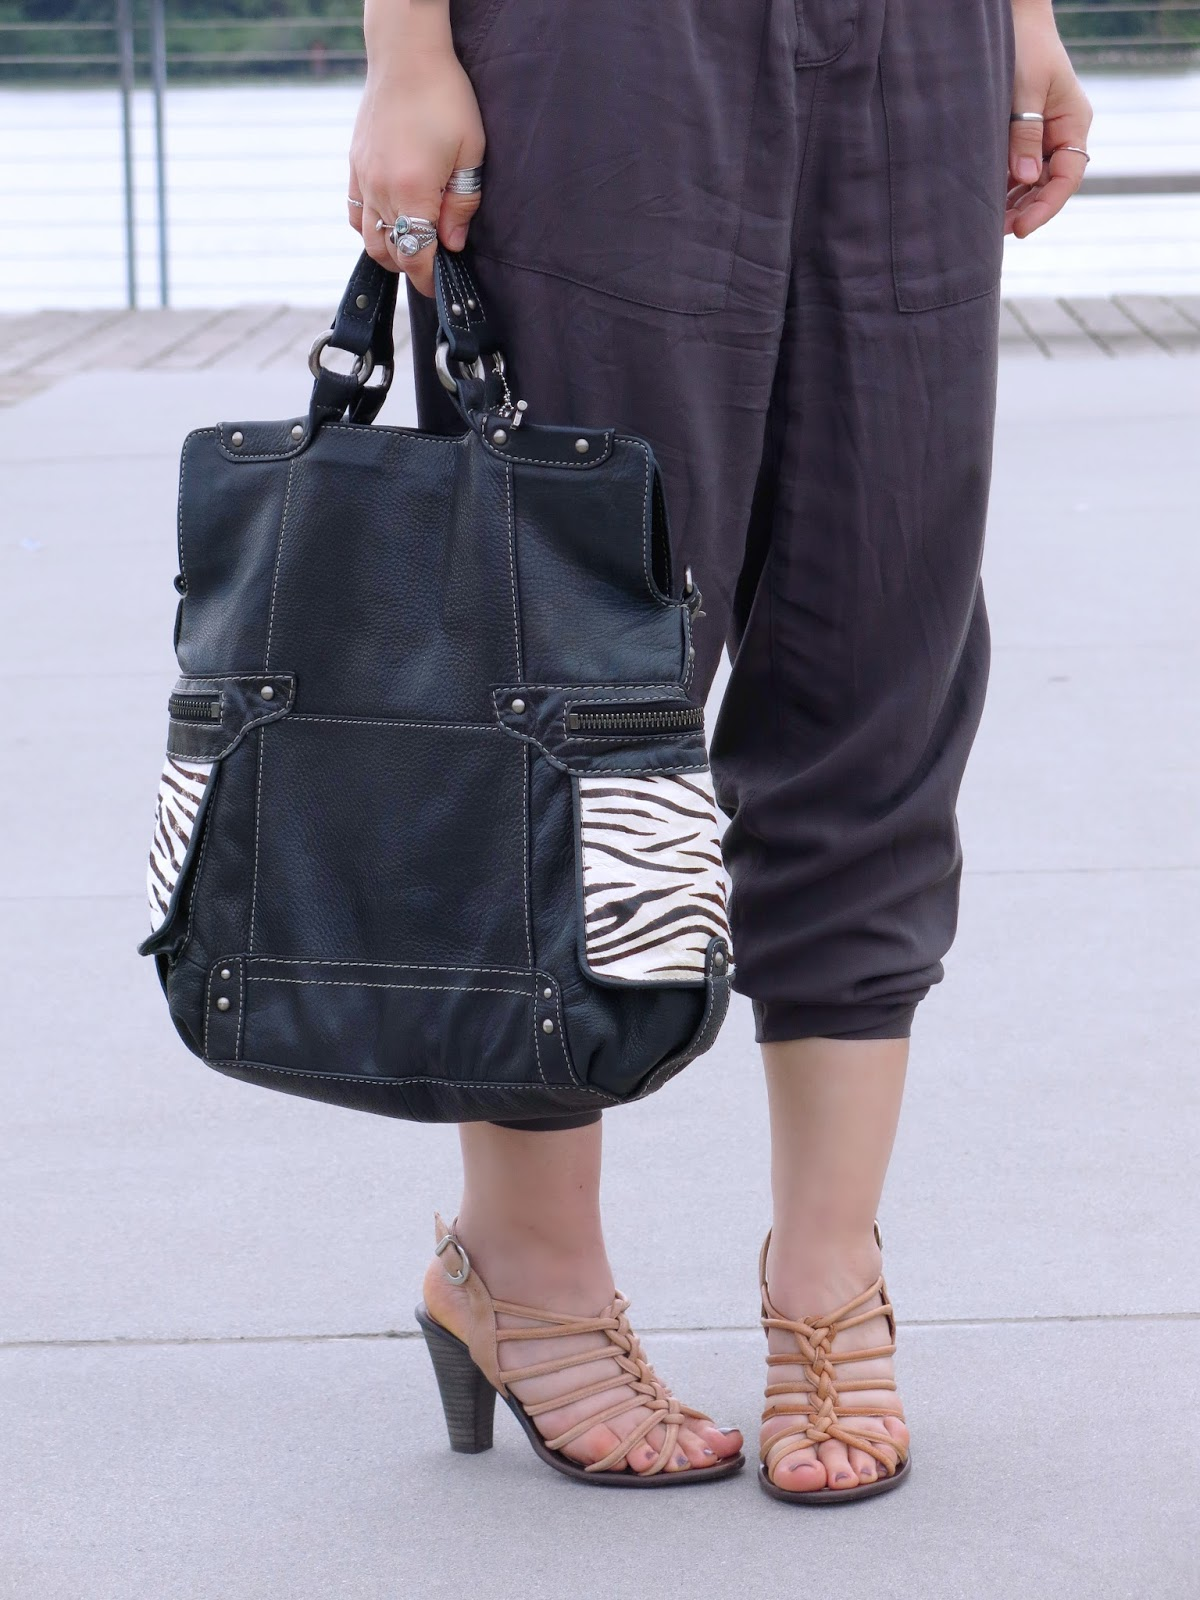 styling a utility-style jumpsuit with strappy nude sandals and a zebra-striped bag